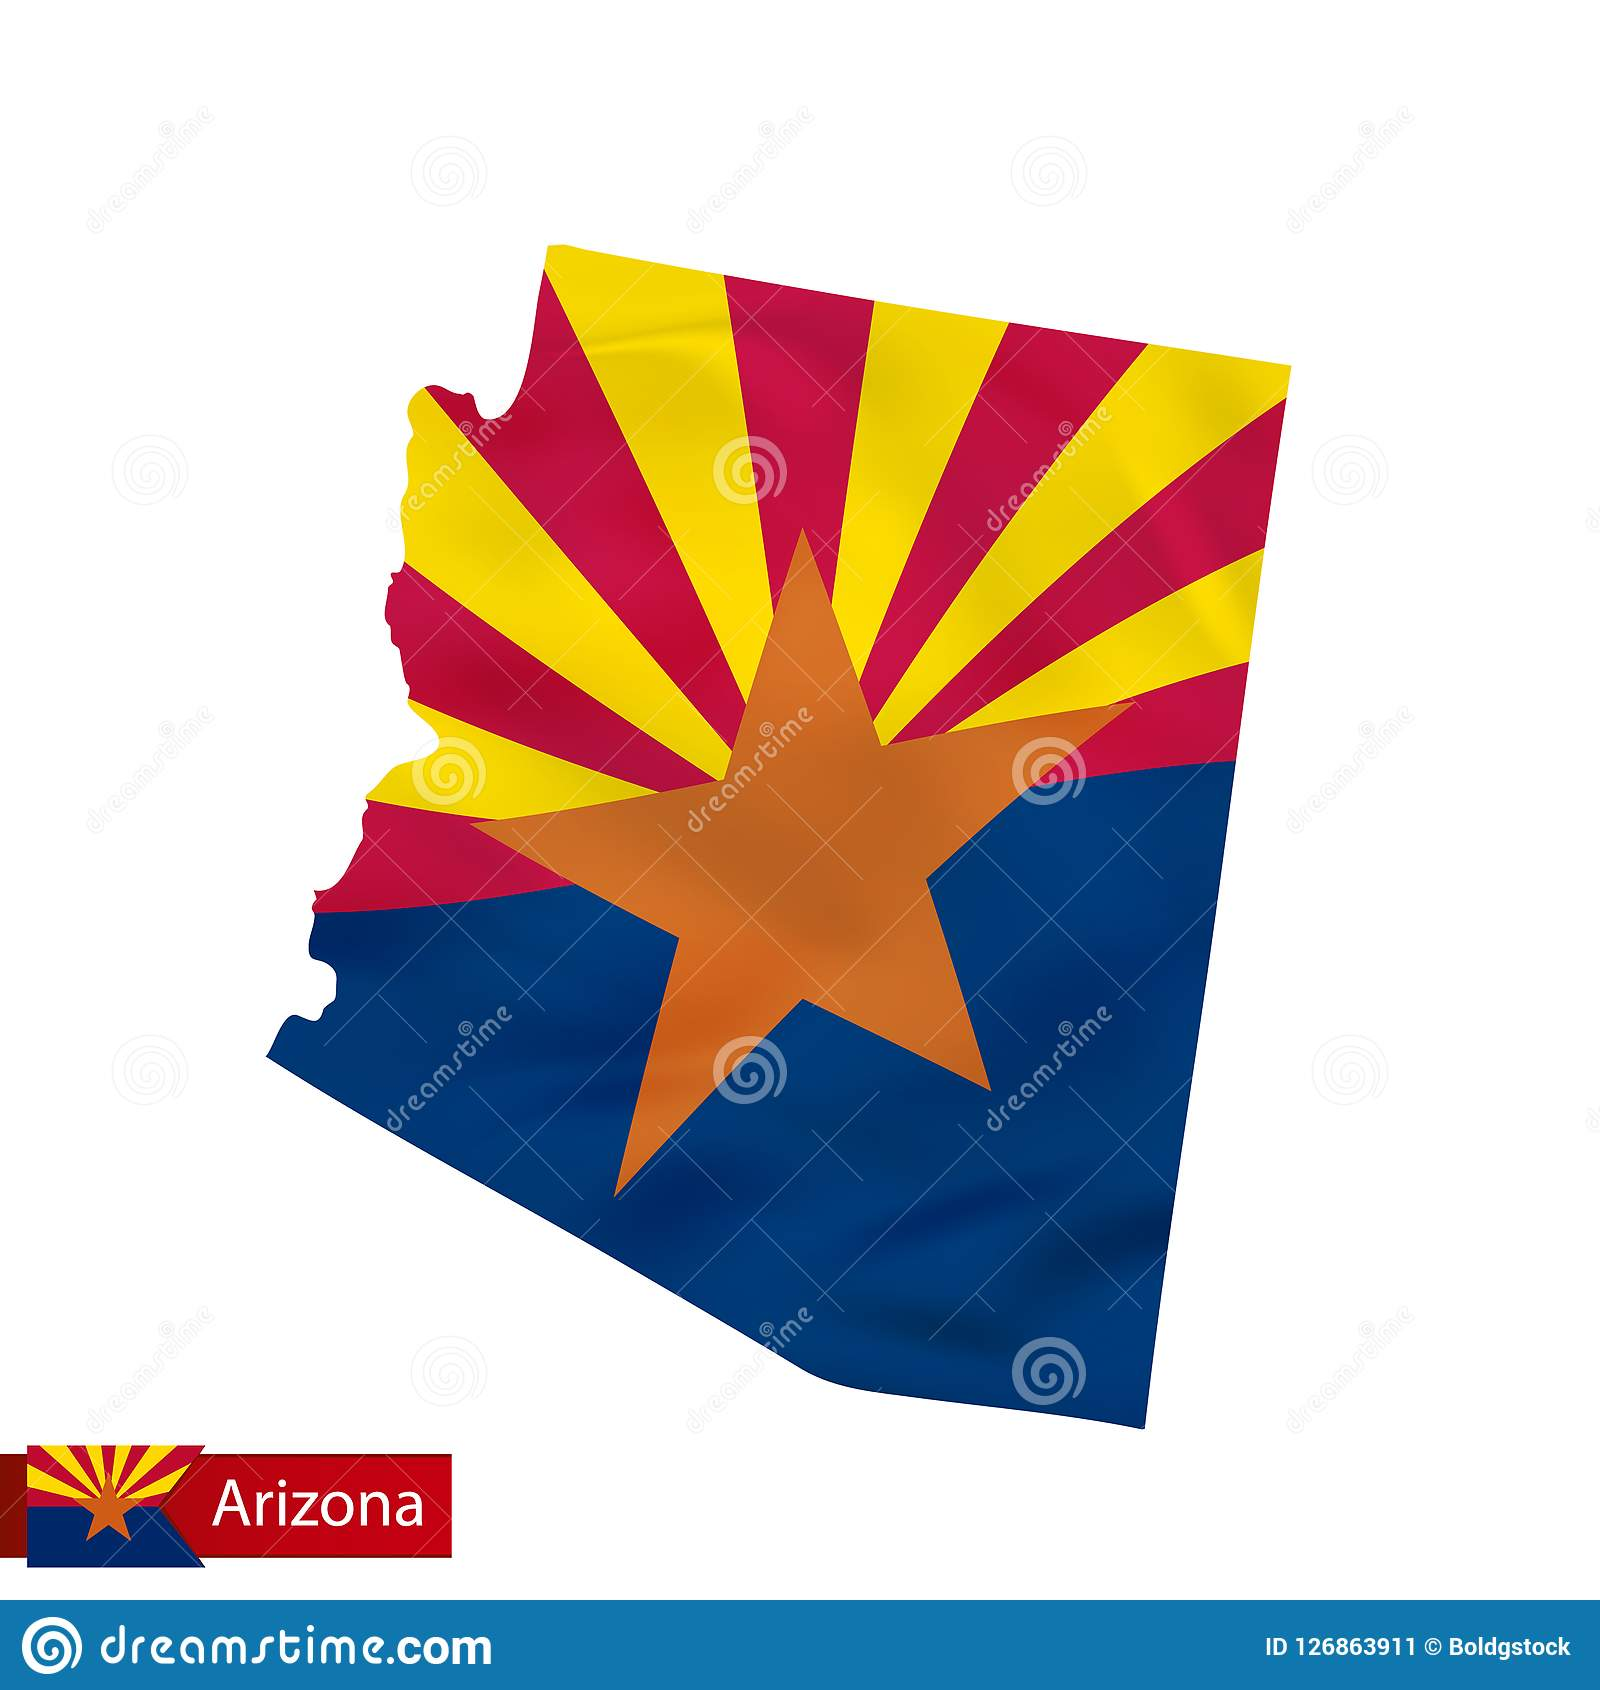 Arizona State Map With Waving Flag Of US State. Stock Vector ...